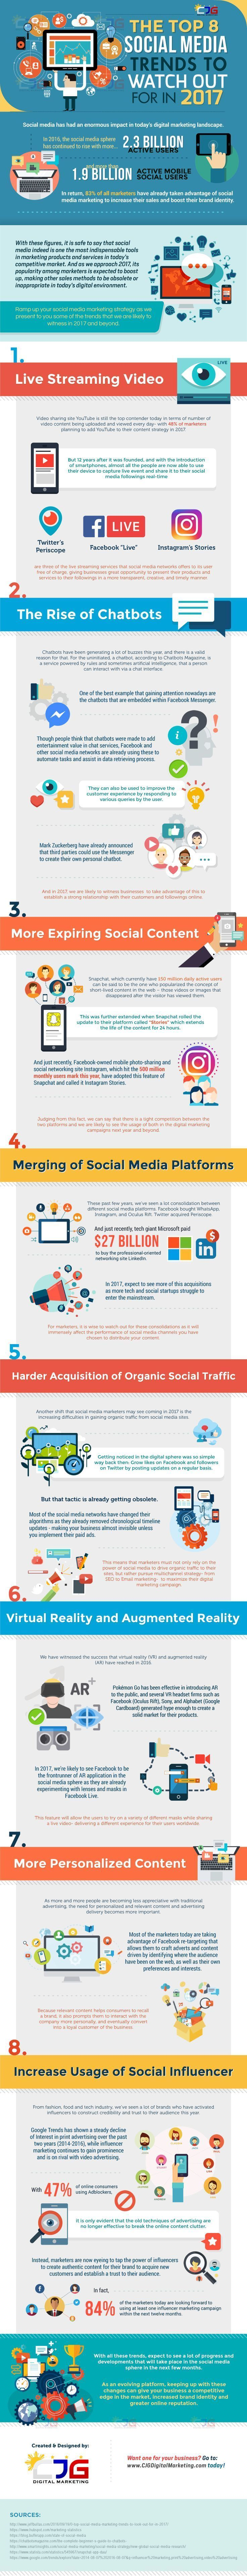 Top 8 hottest social media marketing trends in 2017 (Infographic)http://www.solvemyhow.com/2017/03/free-sports-streaming-sites.html